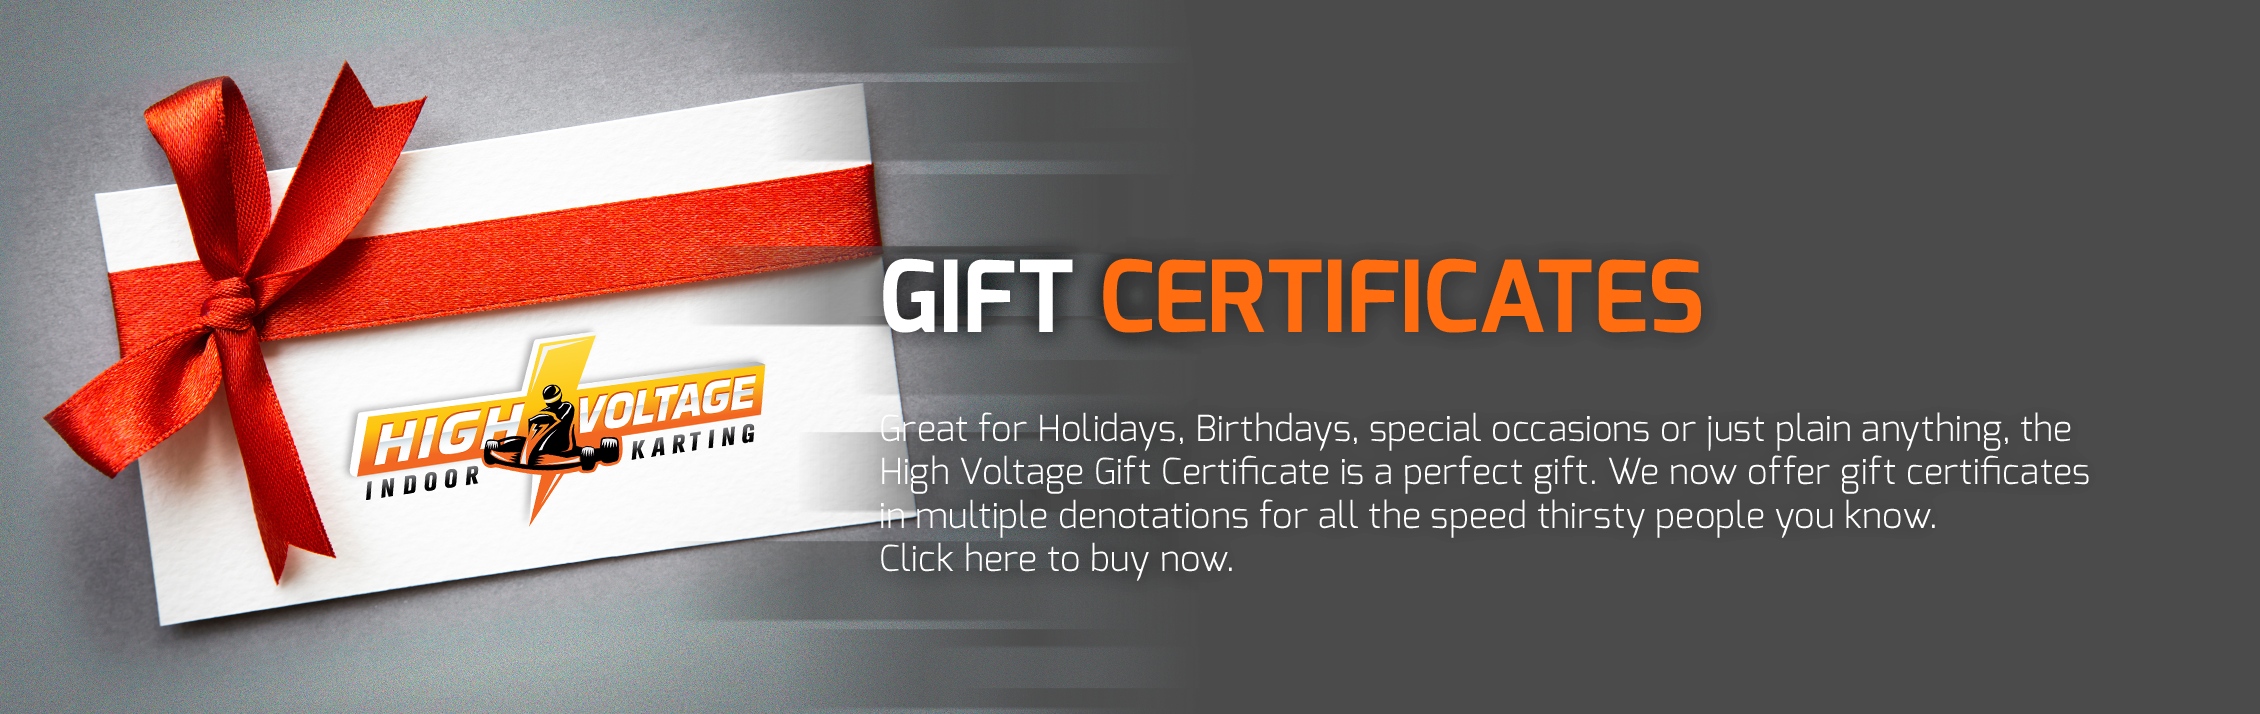 Buy Gift Certificates for High Voltage Indoor Karting